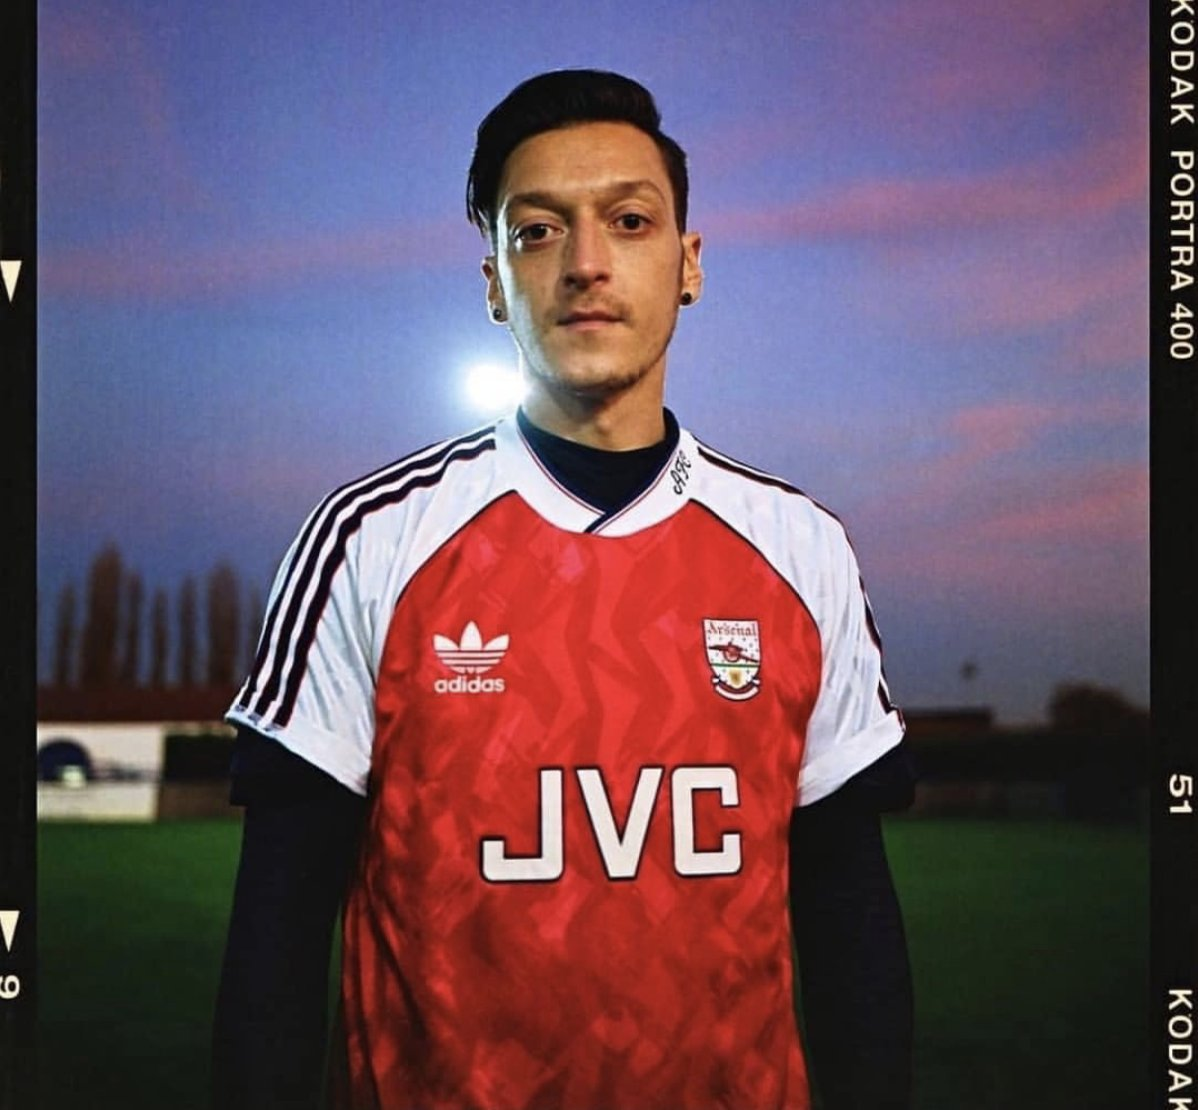 f4bd54af34e As Arsenal get ready to move to Adidas, there was much excitement when  Mesut Ozil was pictured wearing a retro Adidas Arsenal jersey.